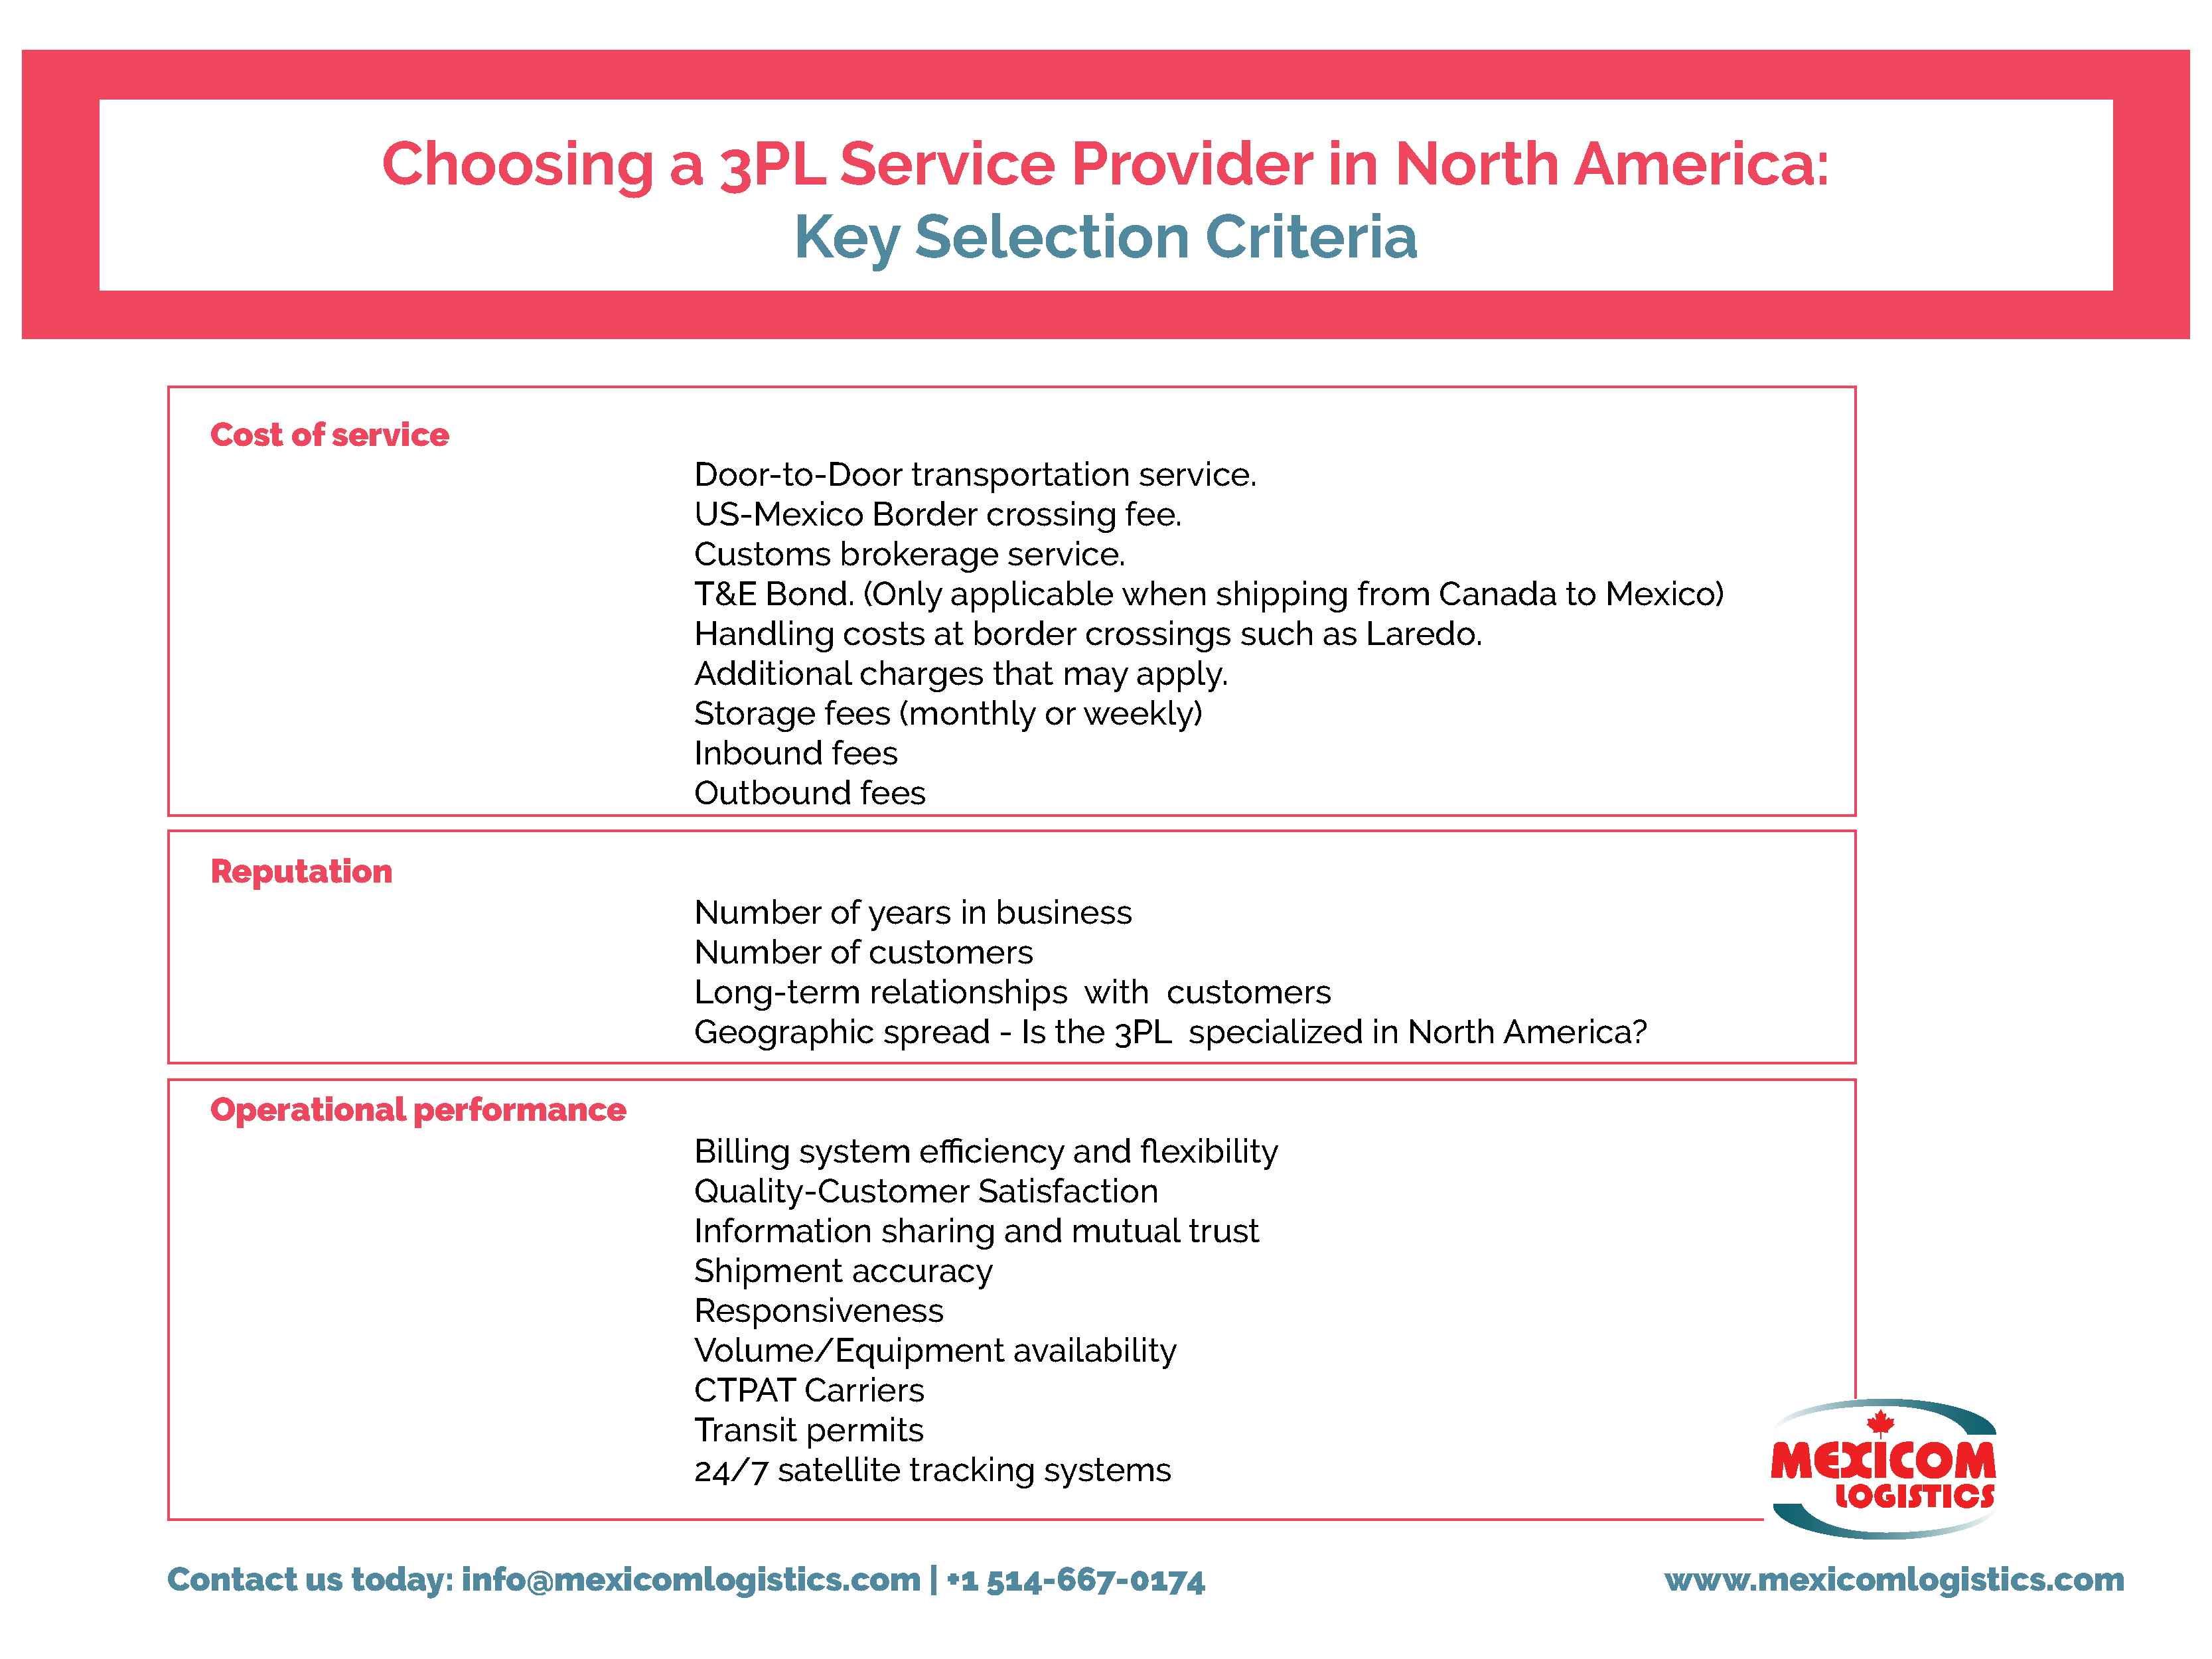 3PL Service provider in North America Key Selection Criteria